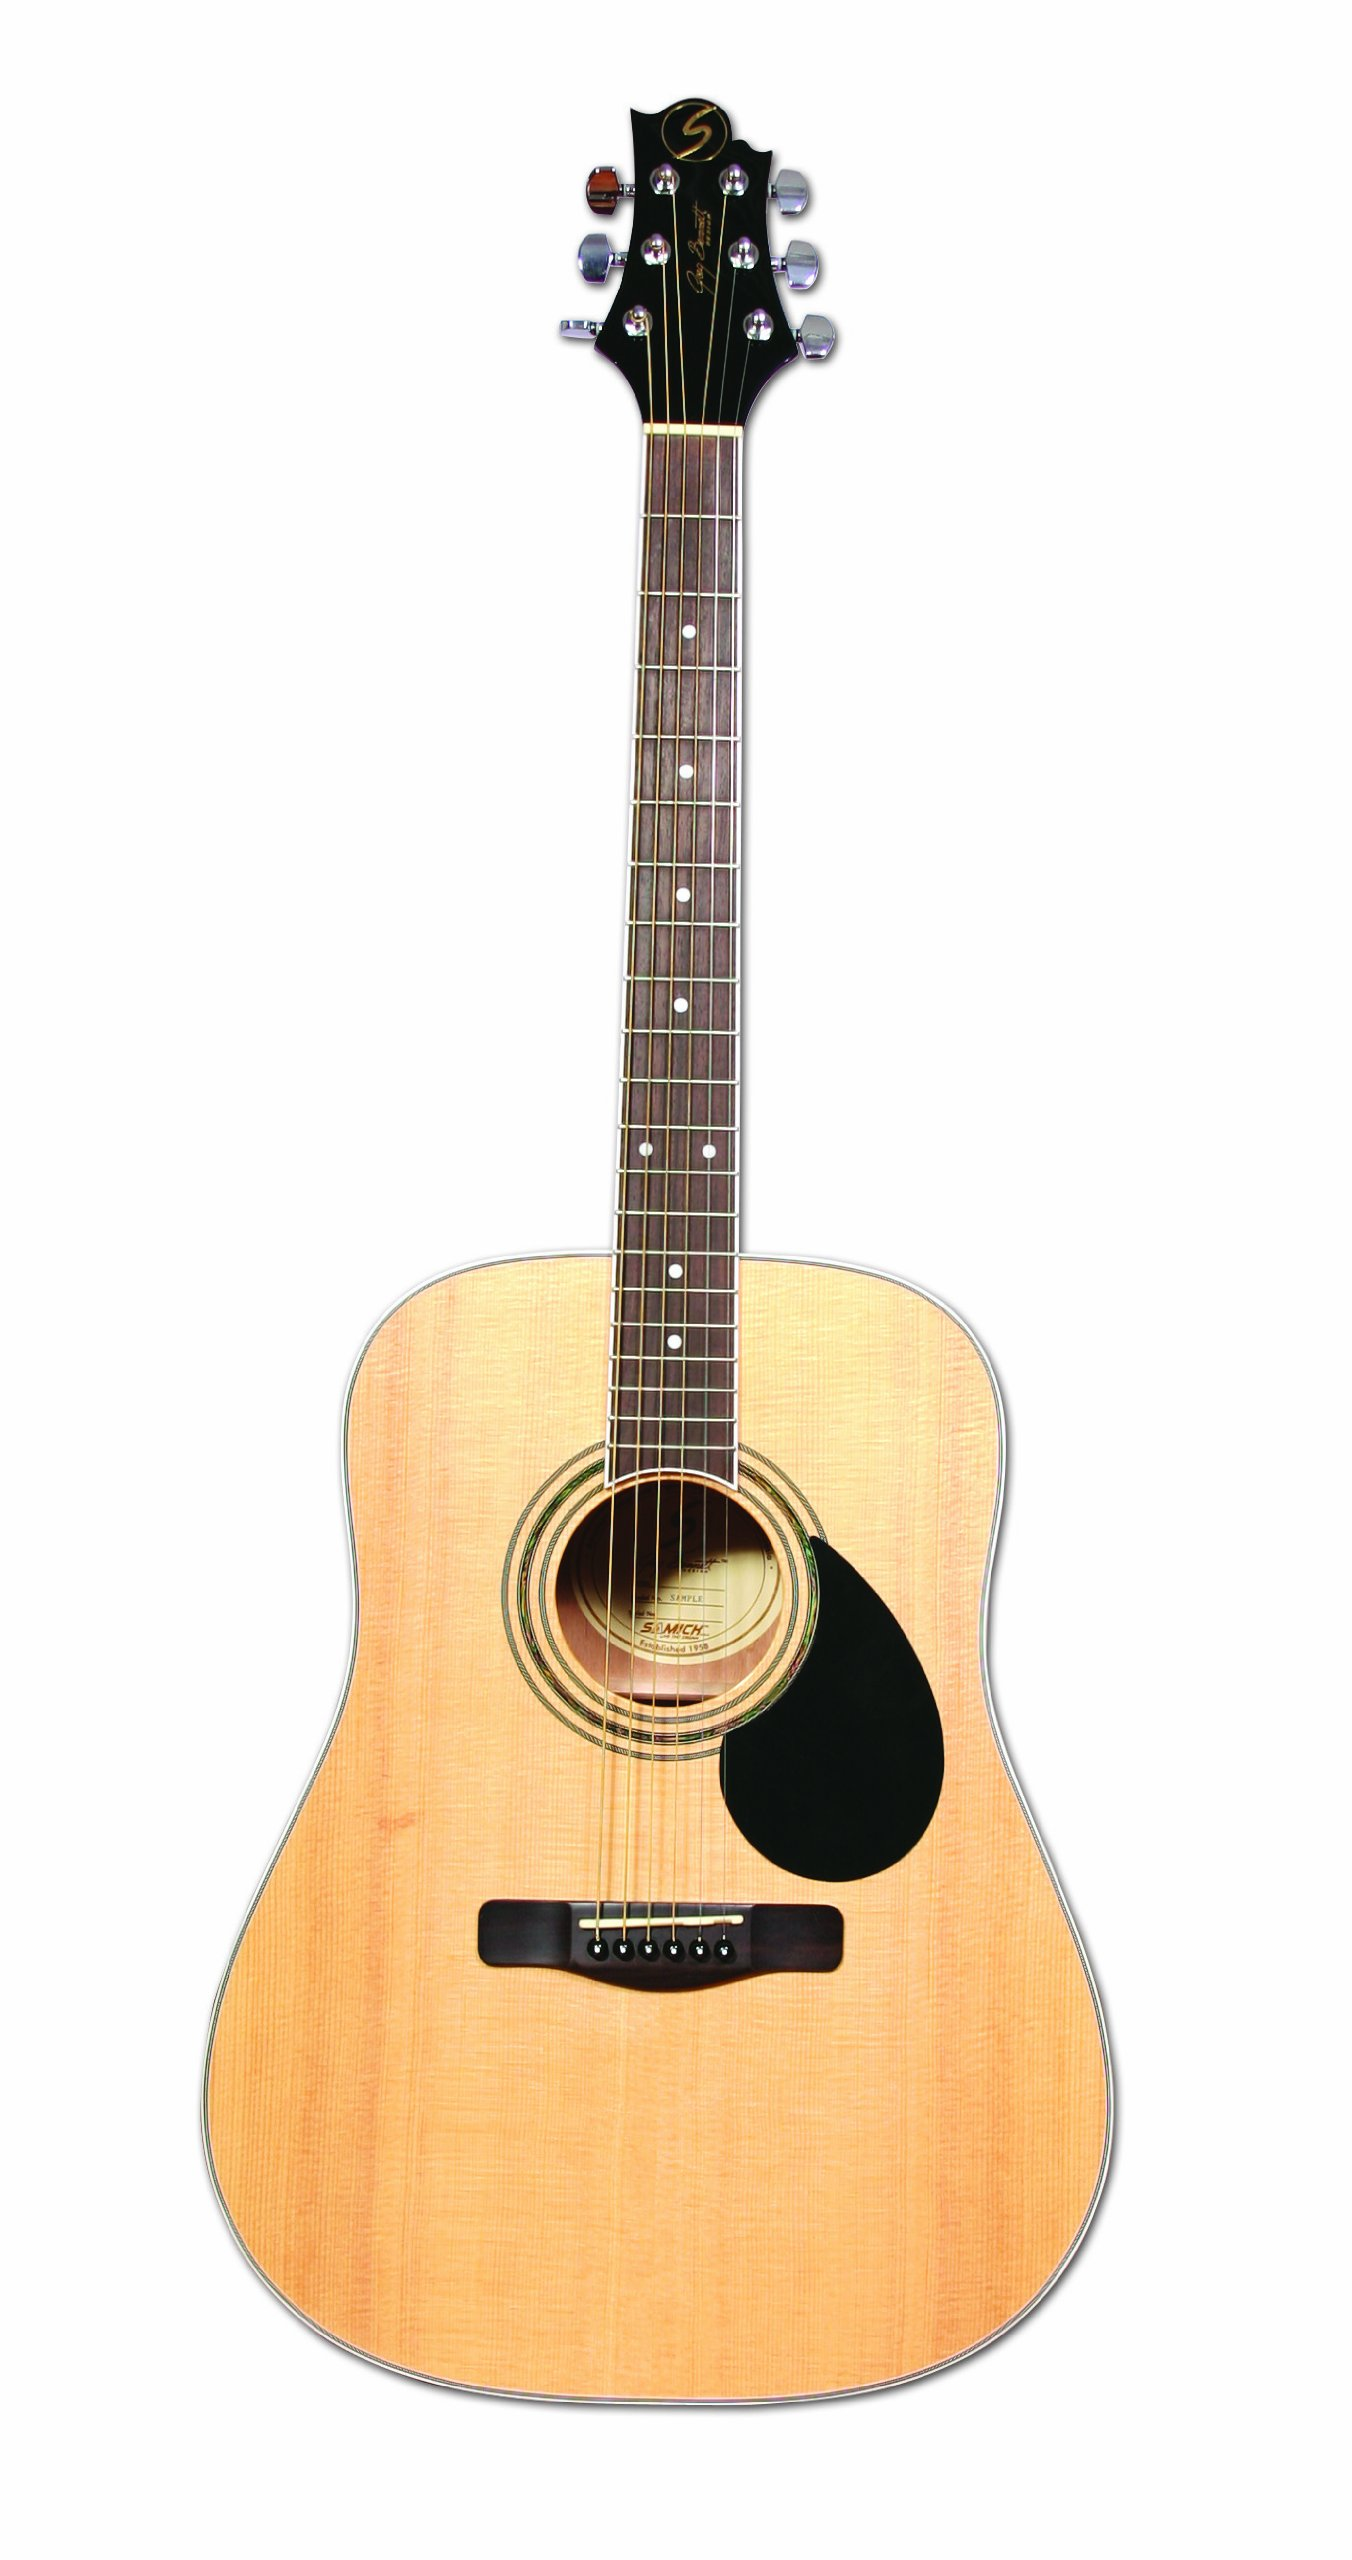 samick greg bennett design gd100s acoustic guitar natural guitar affinity. Black Bedroom Furniture Sets. Home Design Ideas